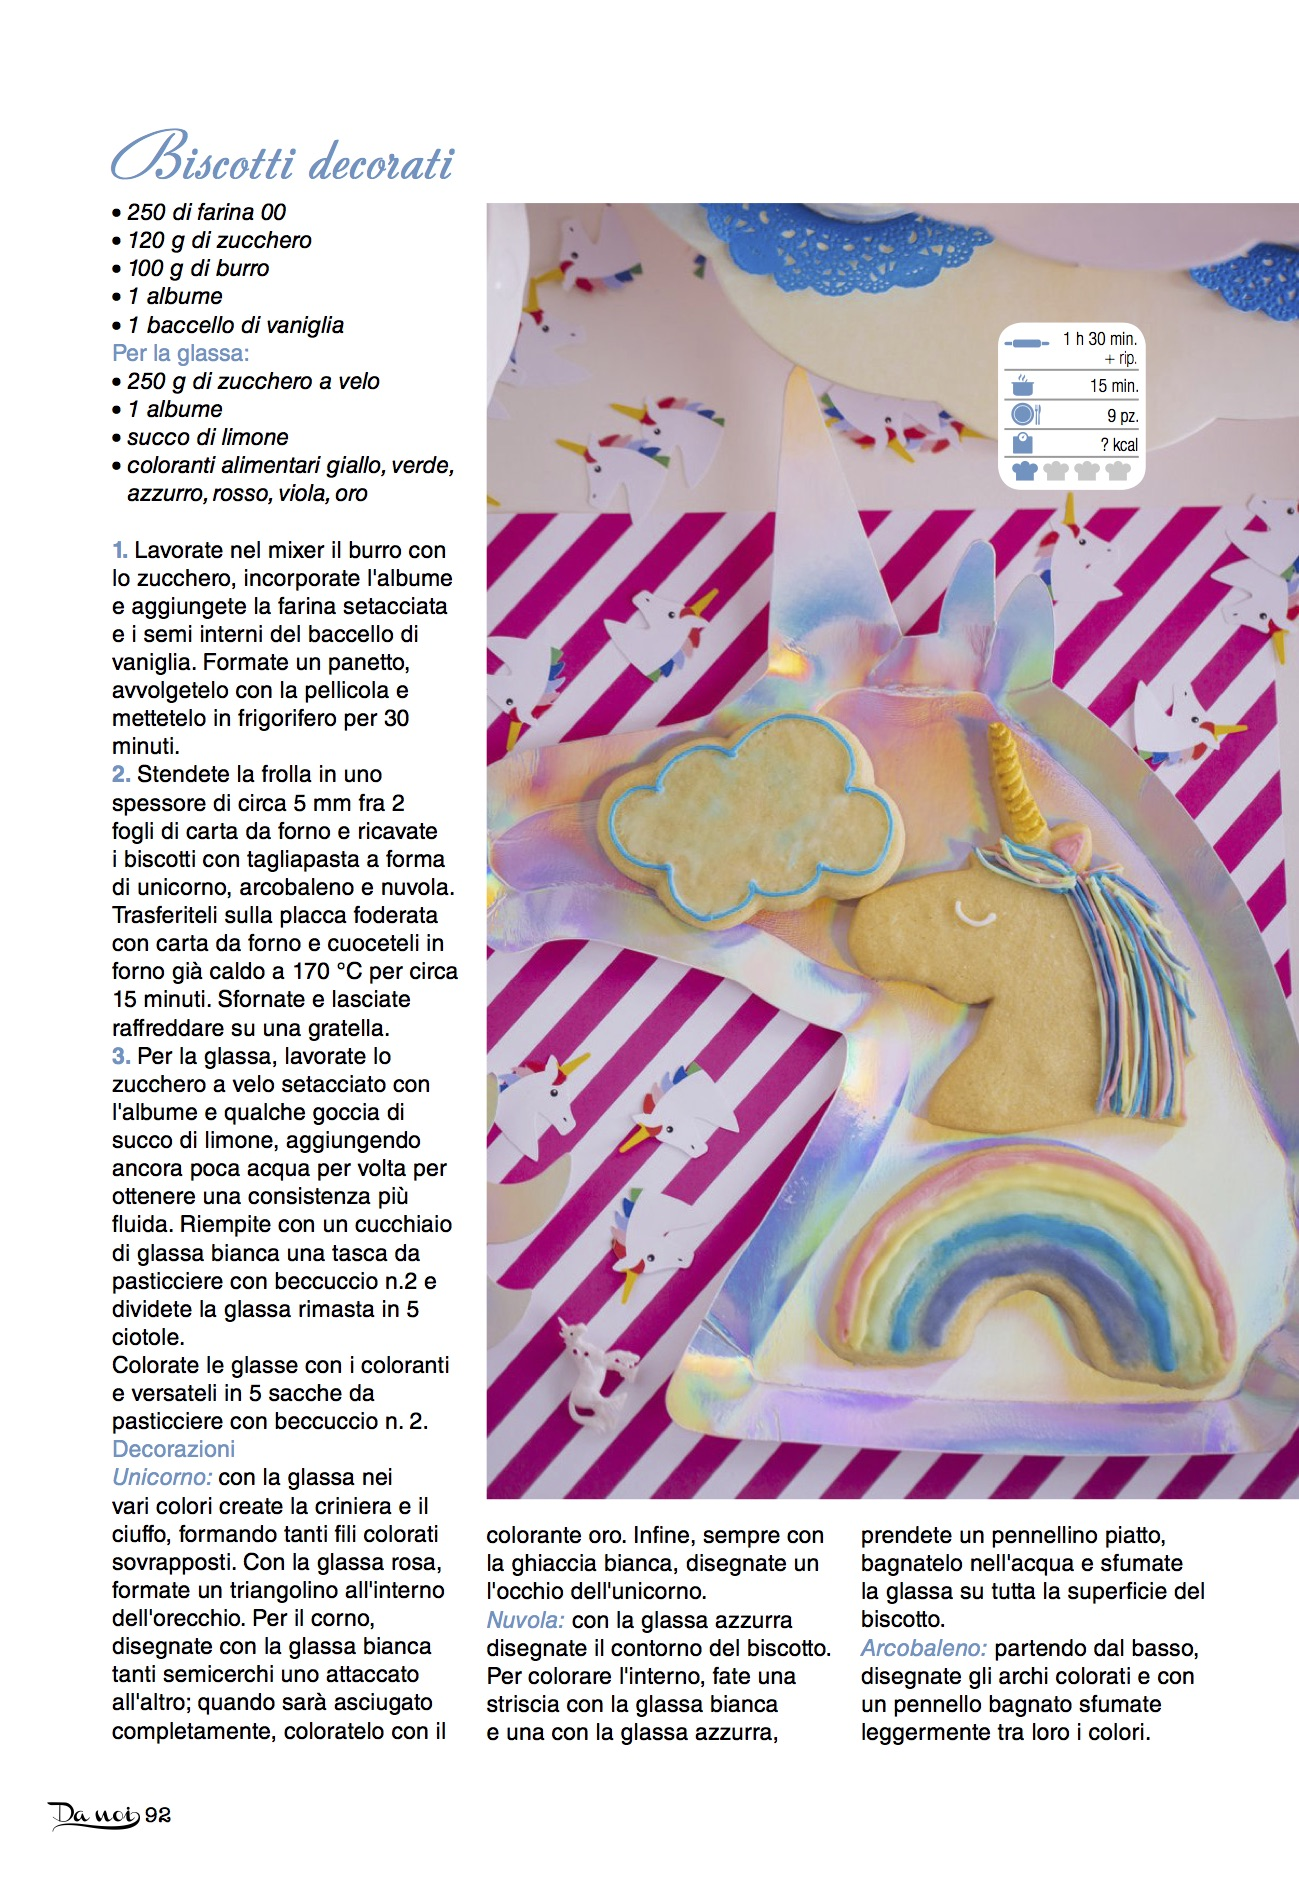 Baking Accs. & Cake Decorating Unicorno E Arcobaleno In Zucchero And To Have A Long Life.